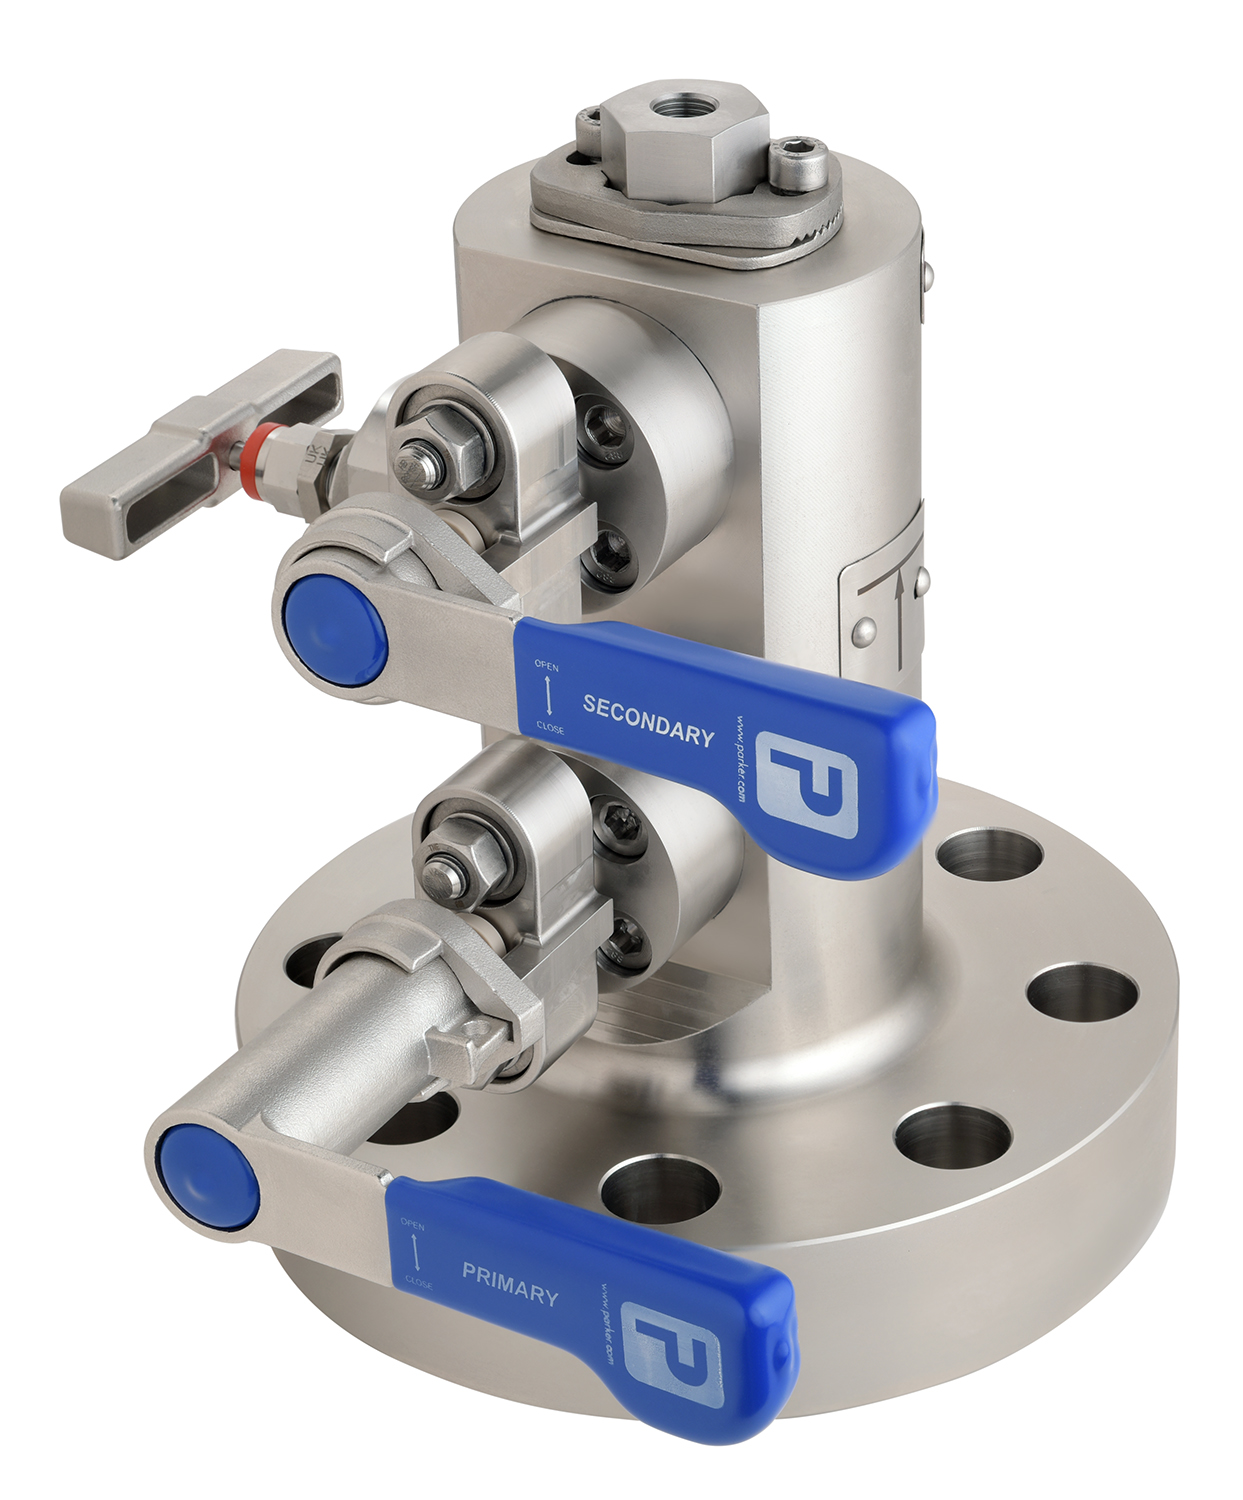 Technical photography of engineering valve